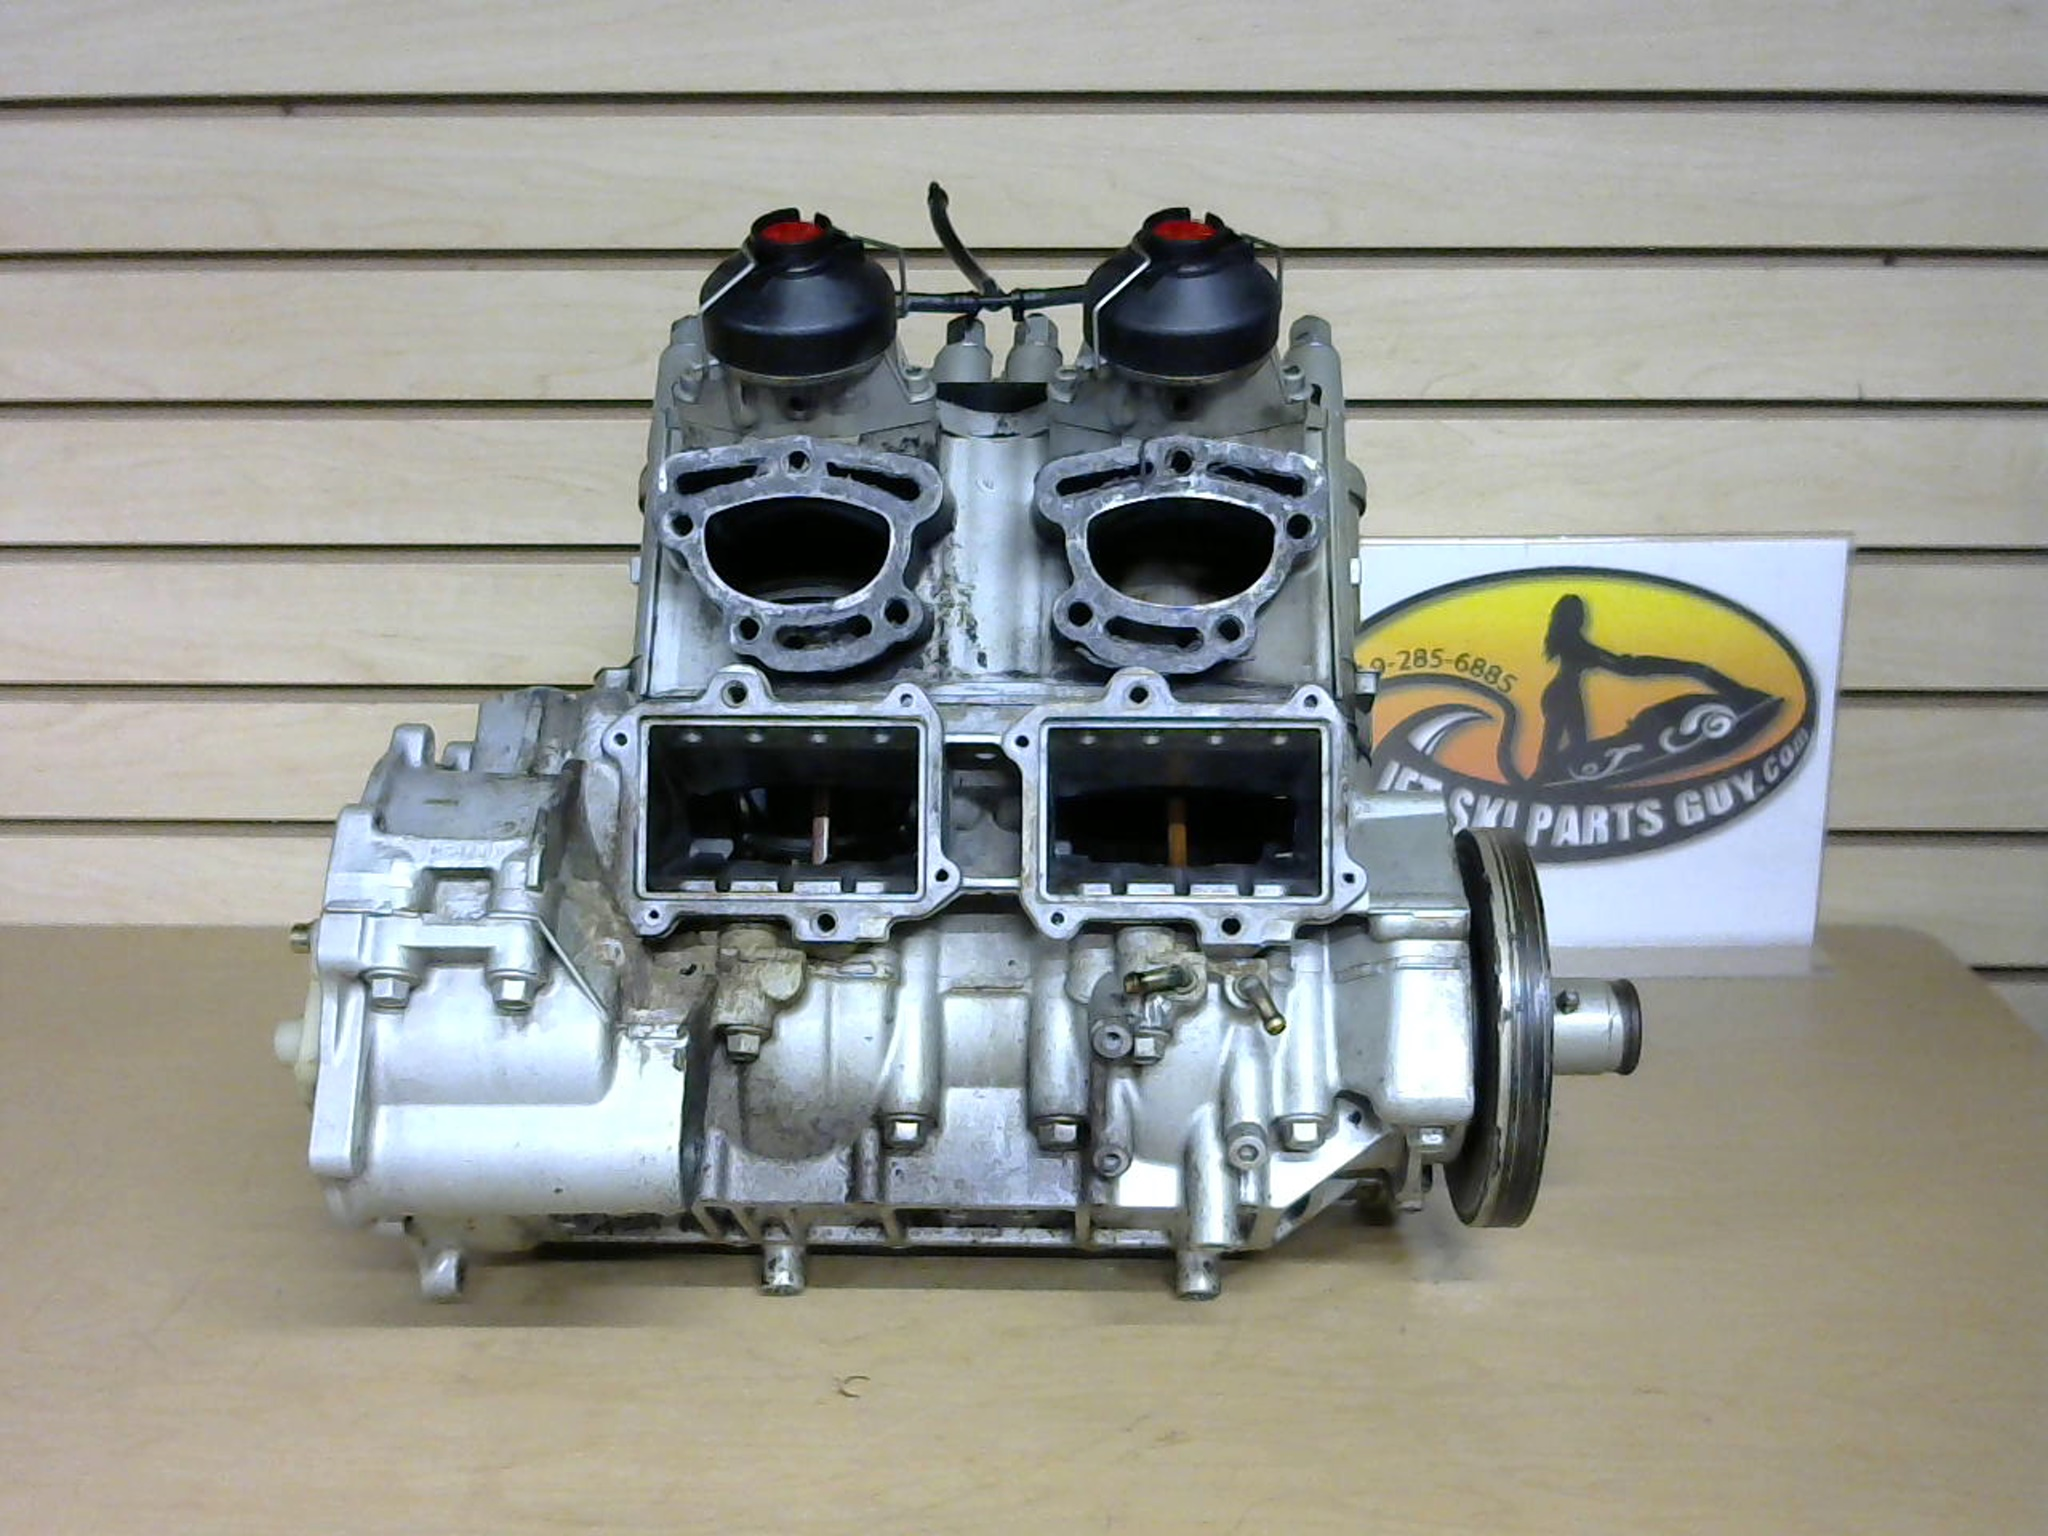 Seadoo 951 Engine Diagram View Diagram Rotax Engine Rebuild Seadoo